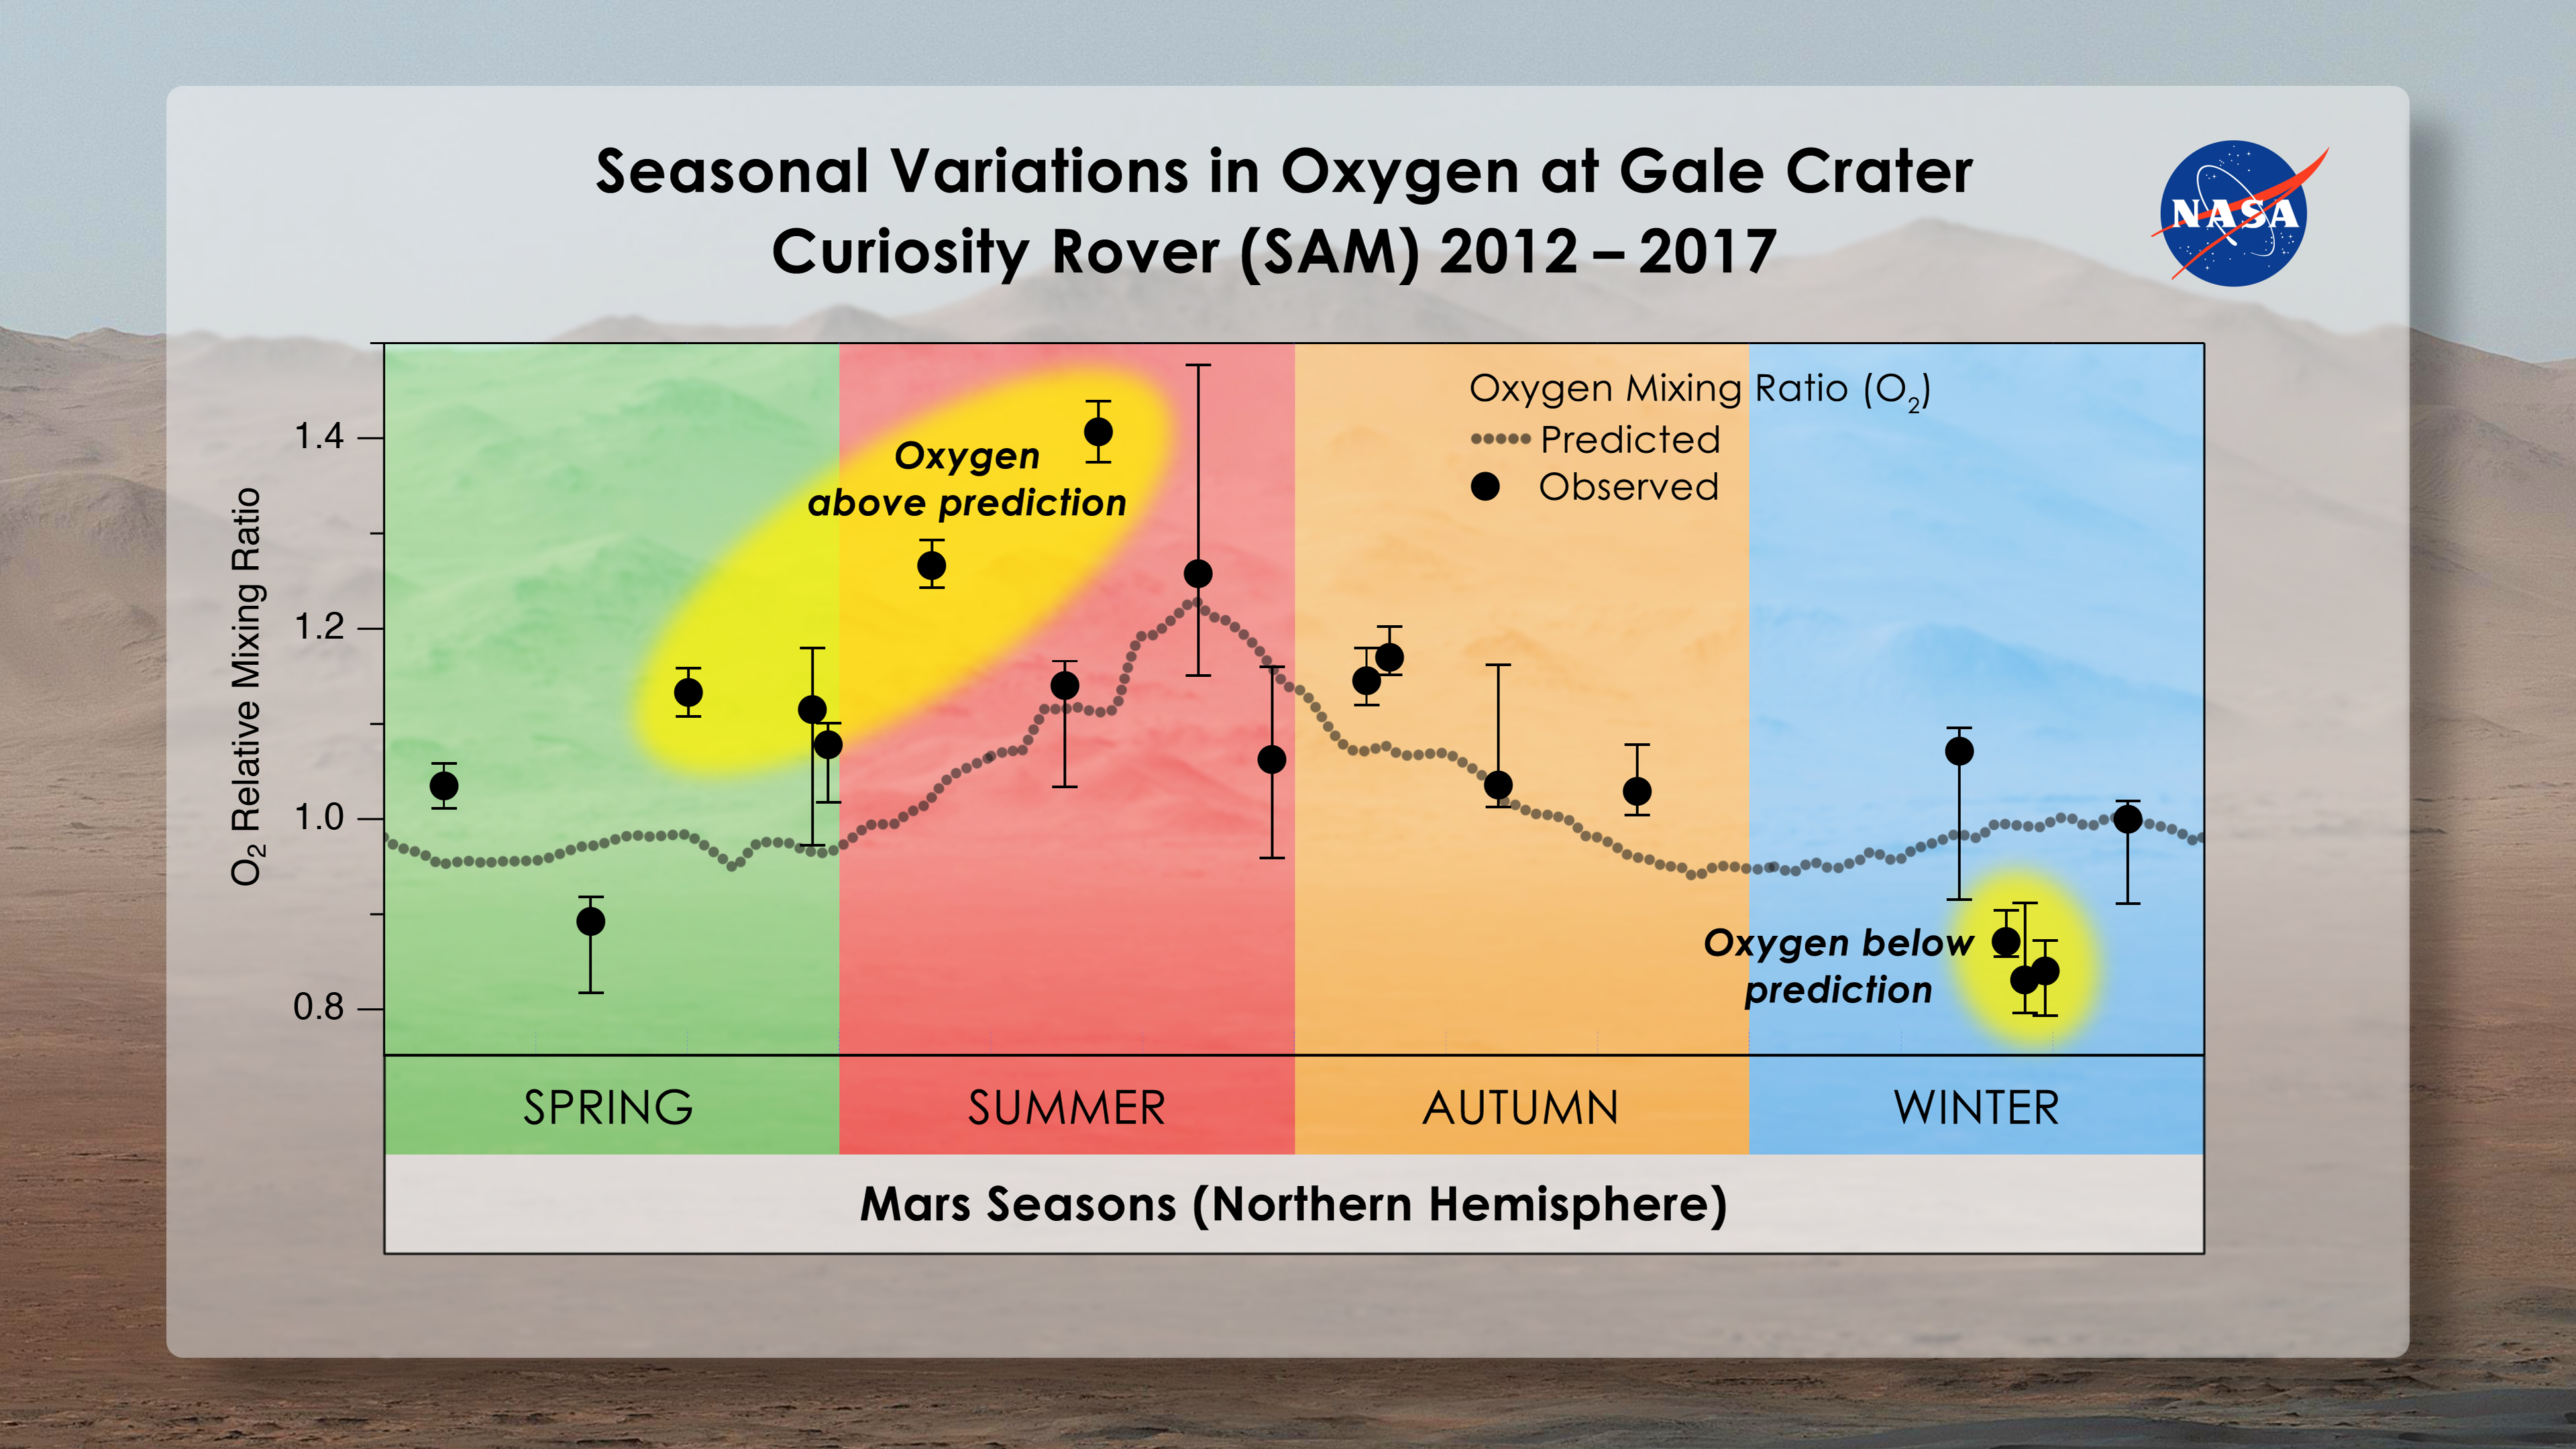 https://www.nasa.gov/sites/default/files/thumbnails/image/mars_seasonal_oxygen_gale_crater.jpg